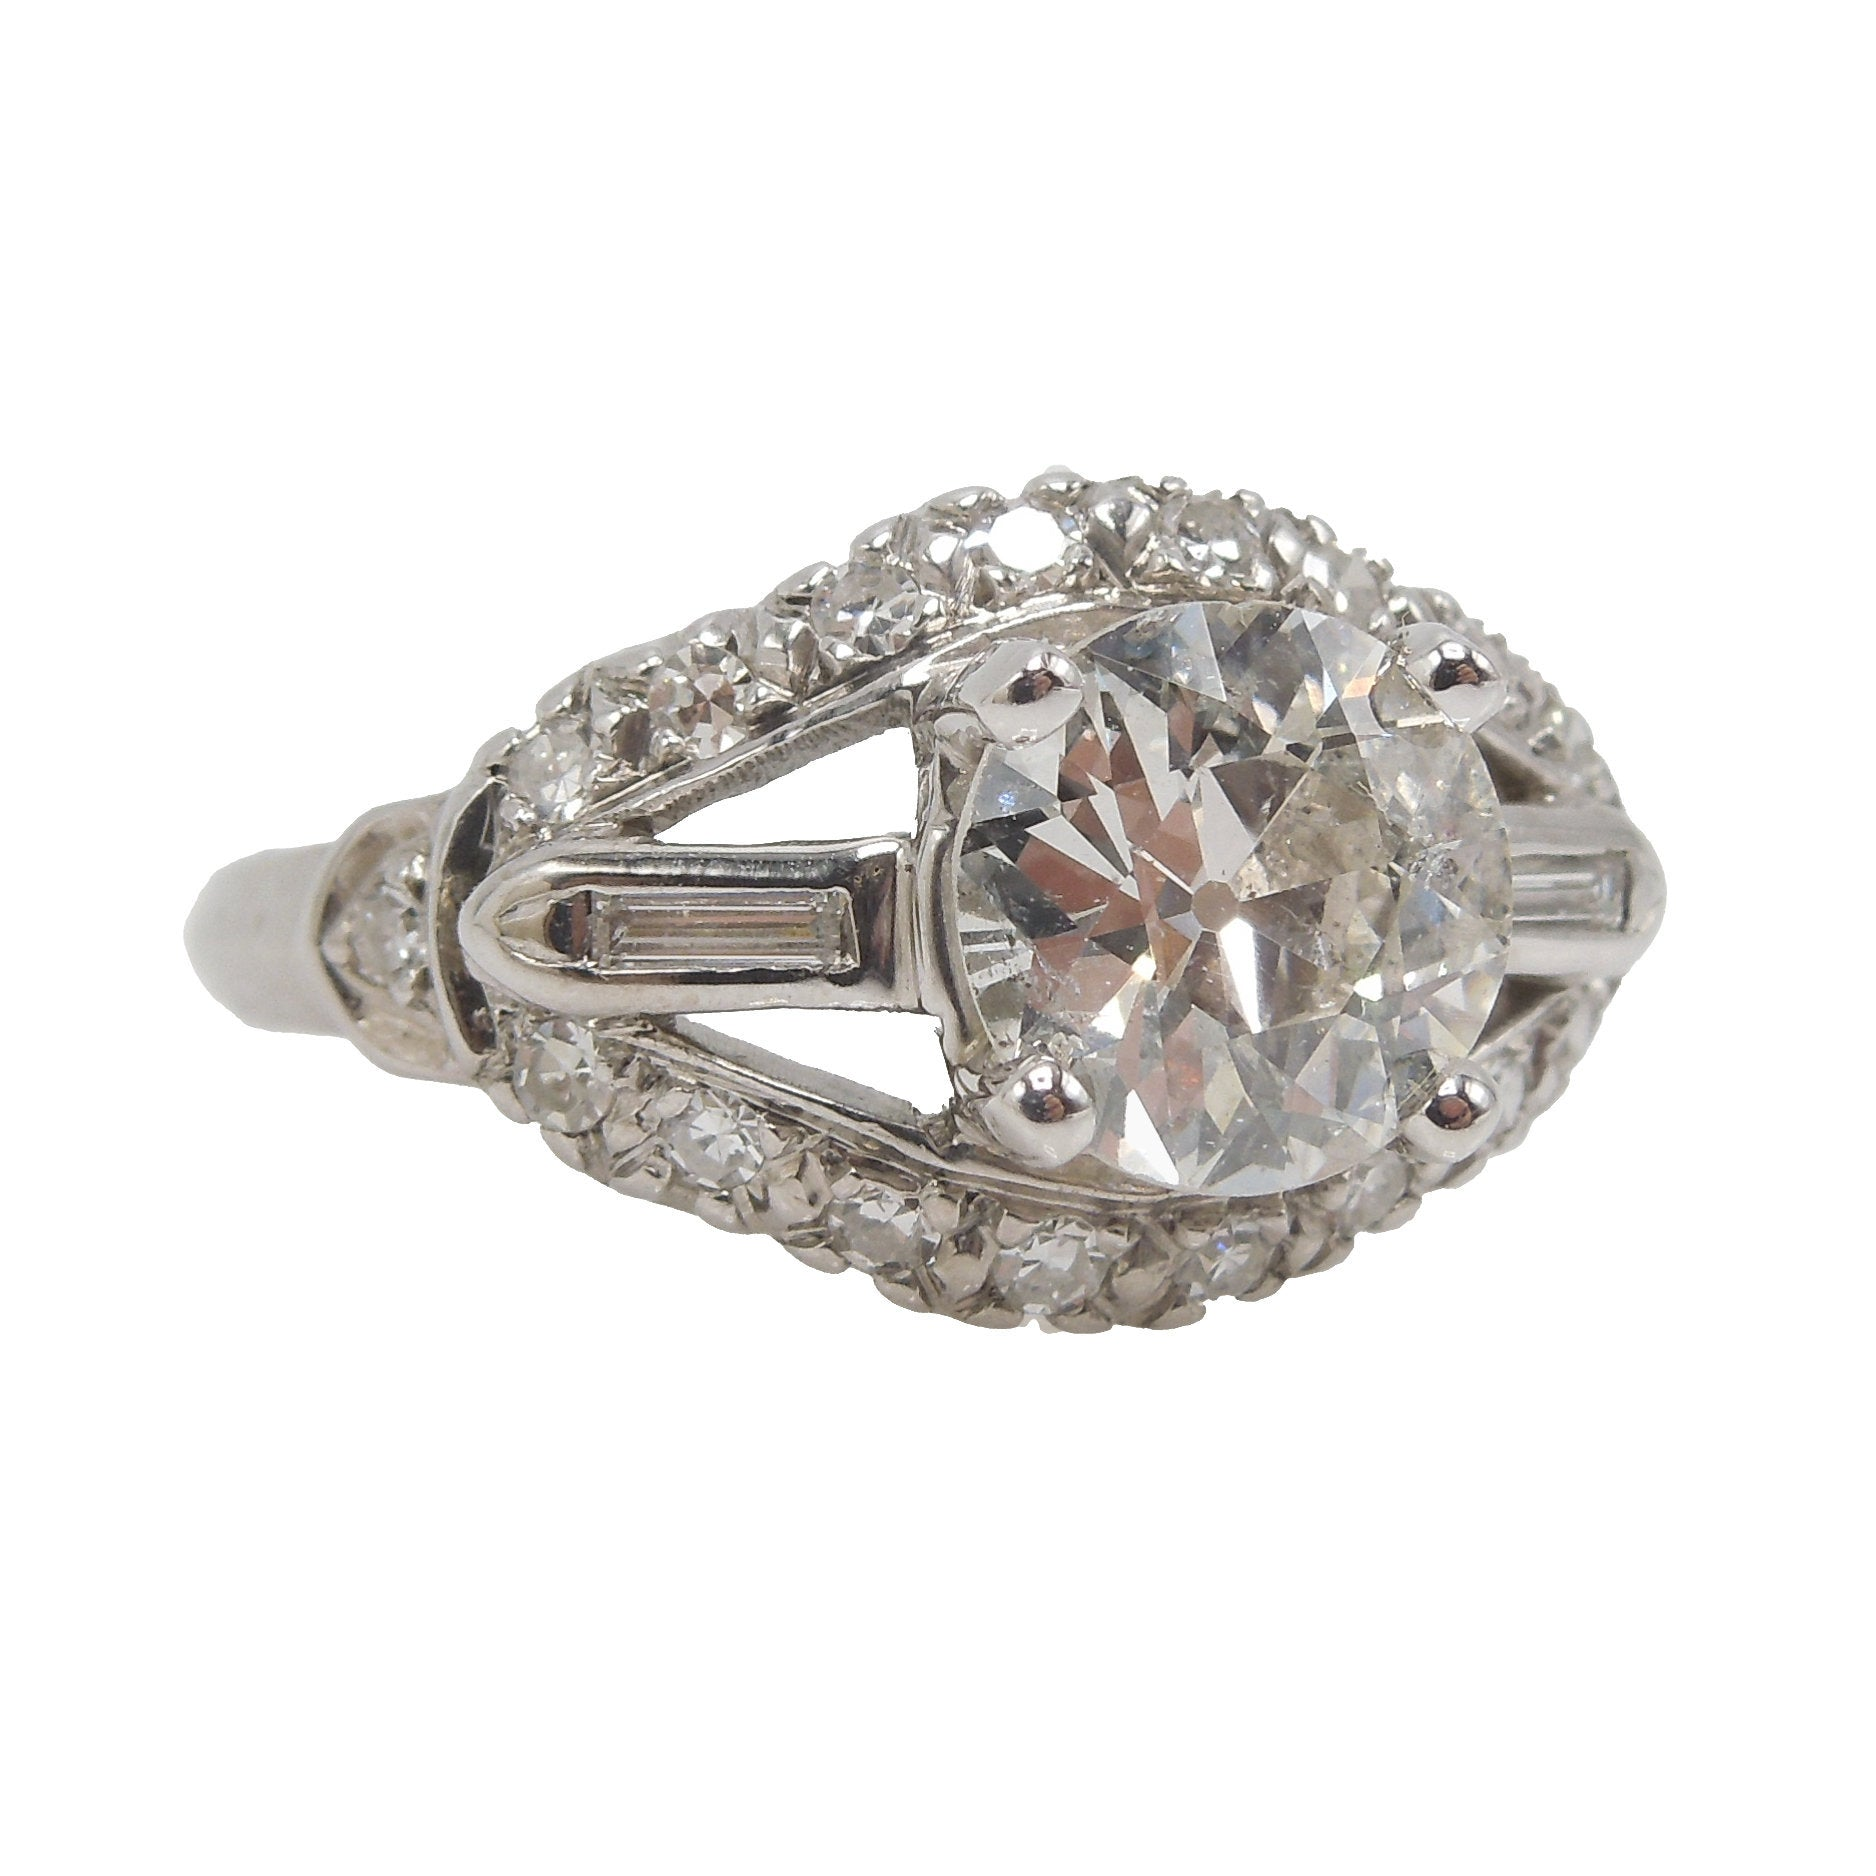 1.33 ct Old European Cut Diamond in Art Deco Mounting with Baguettes - Engagement Ring